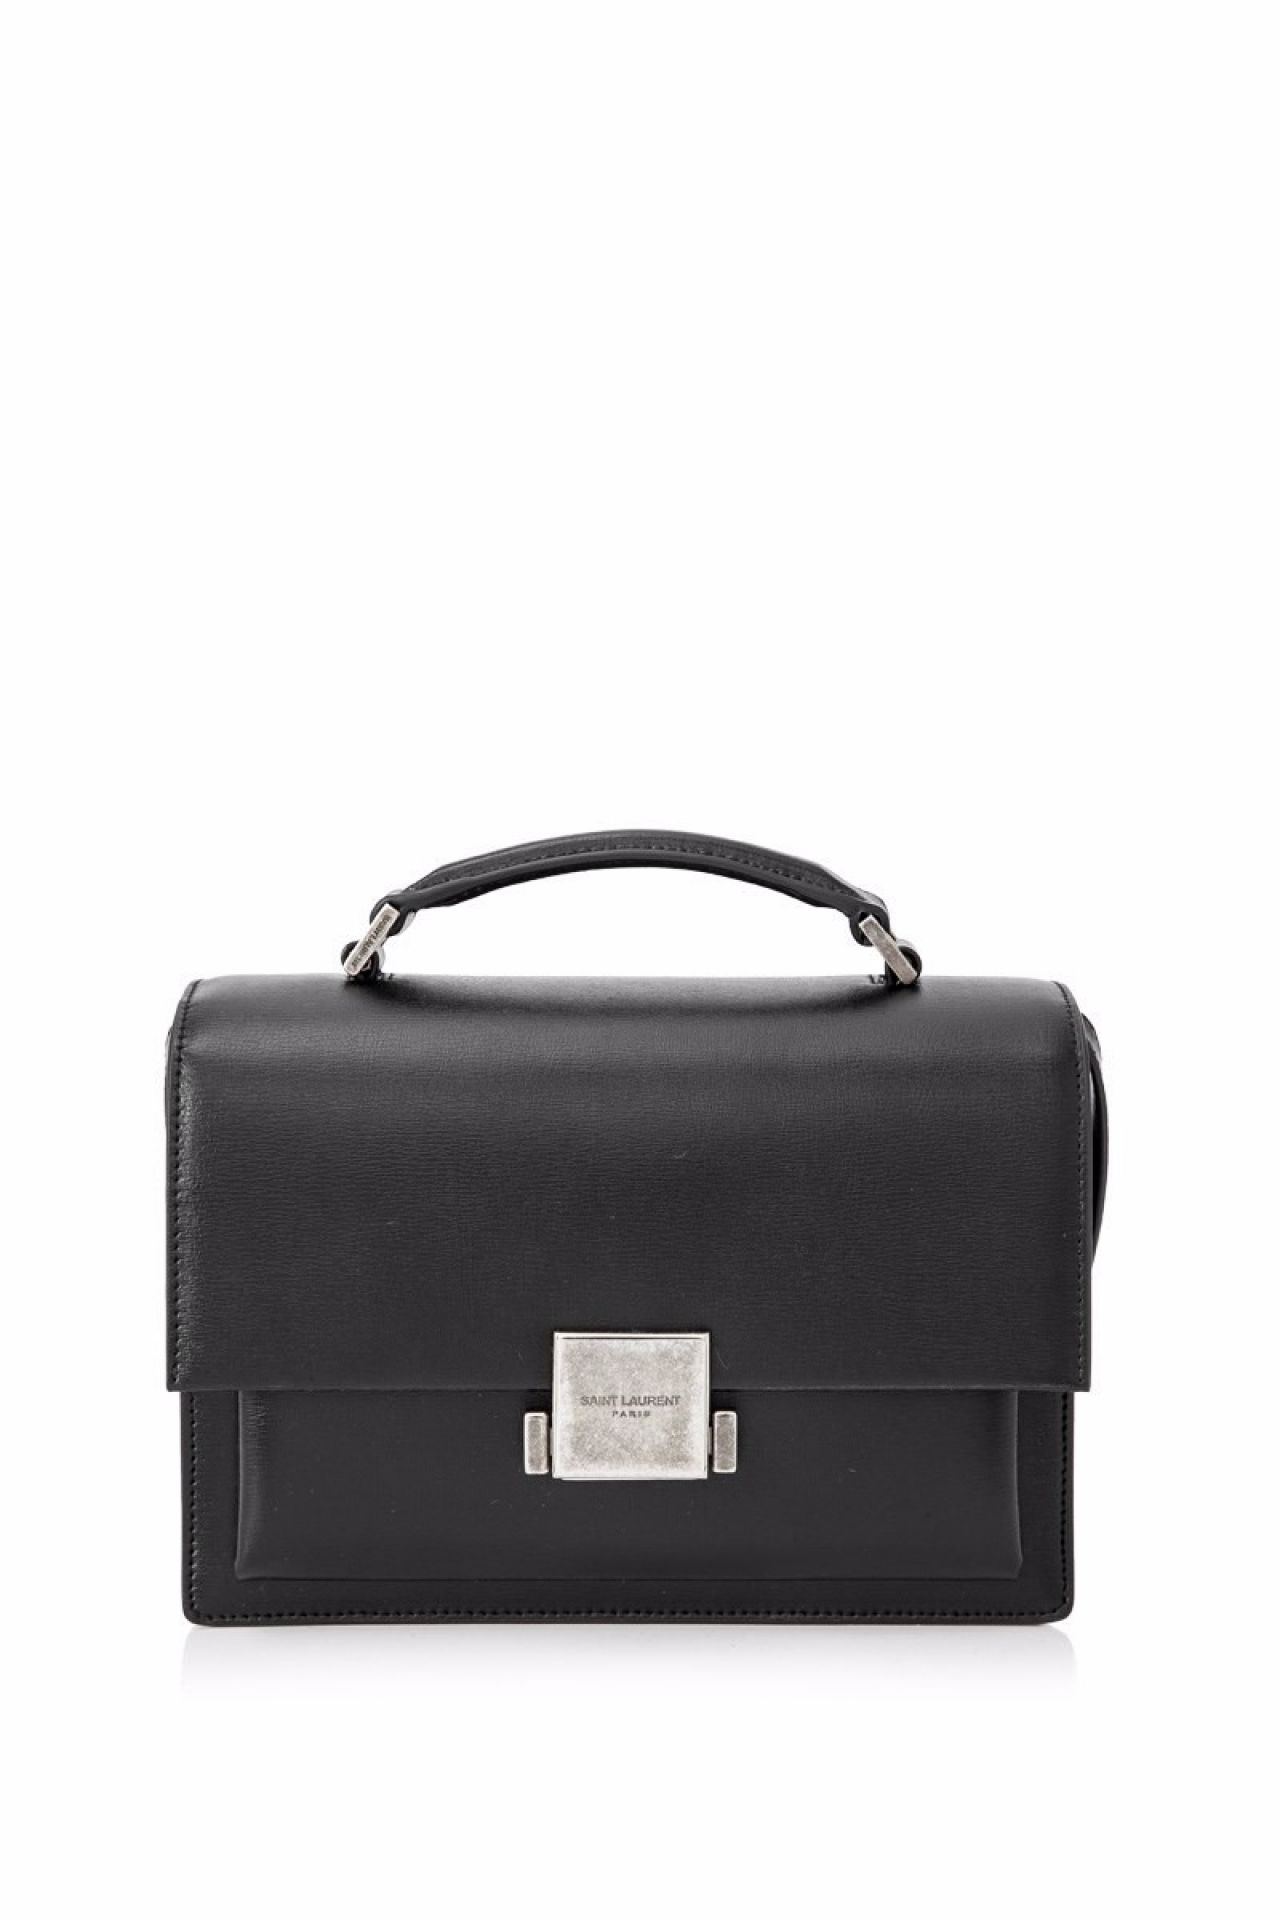 Saint Laurent Medium Bellechasse Bag